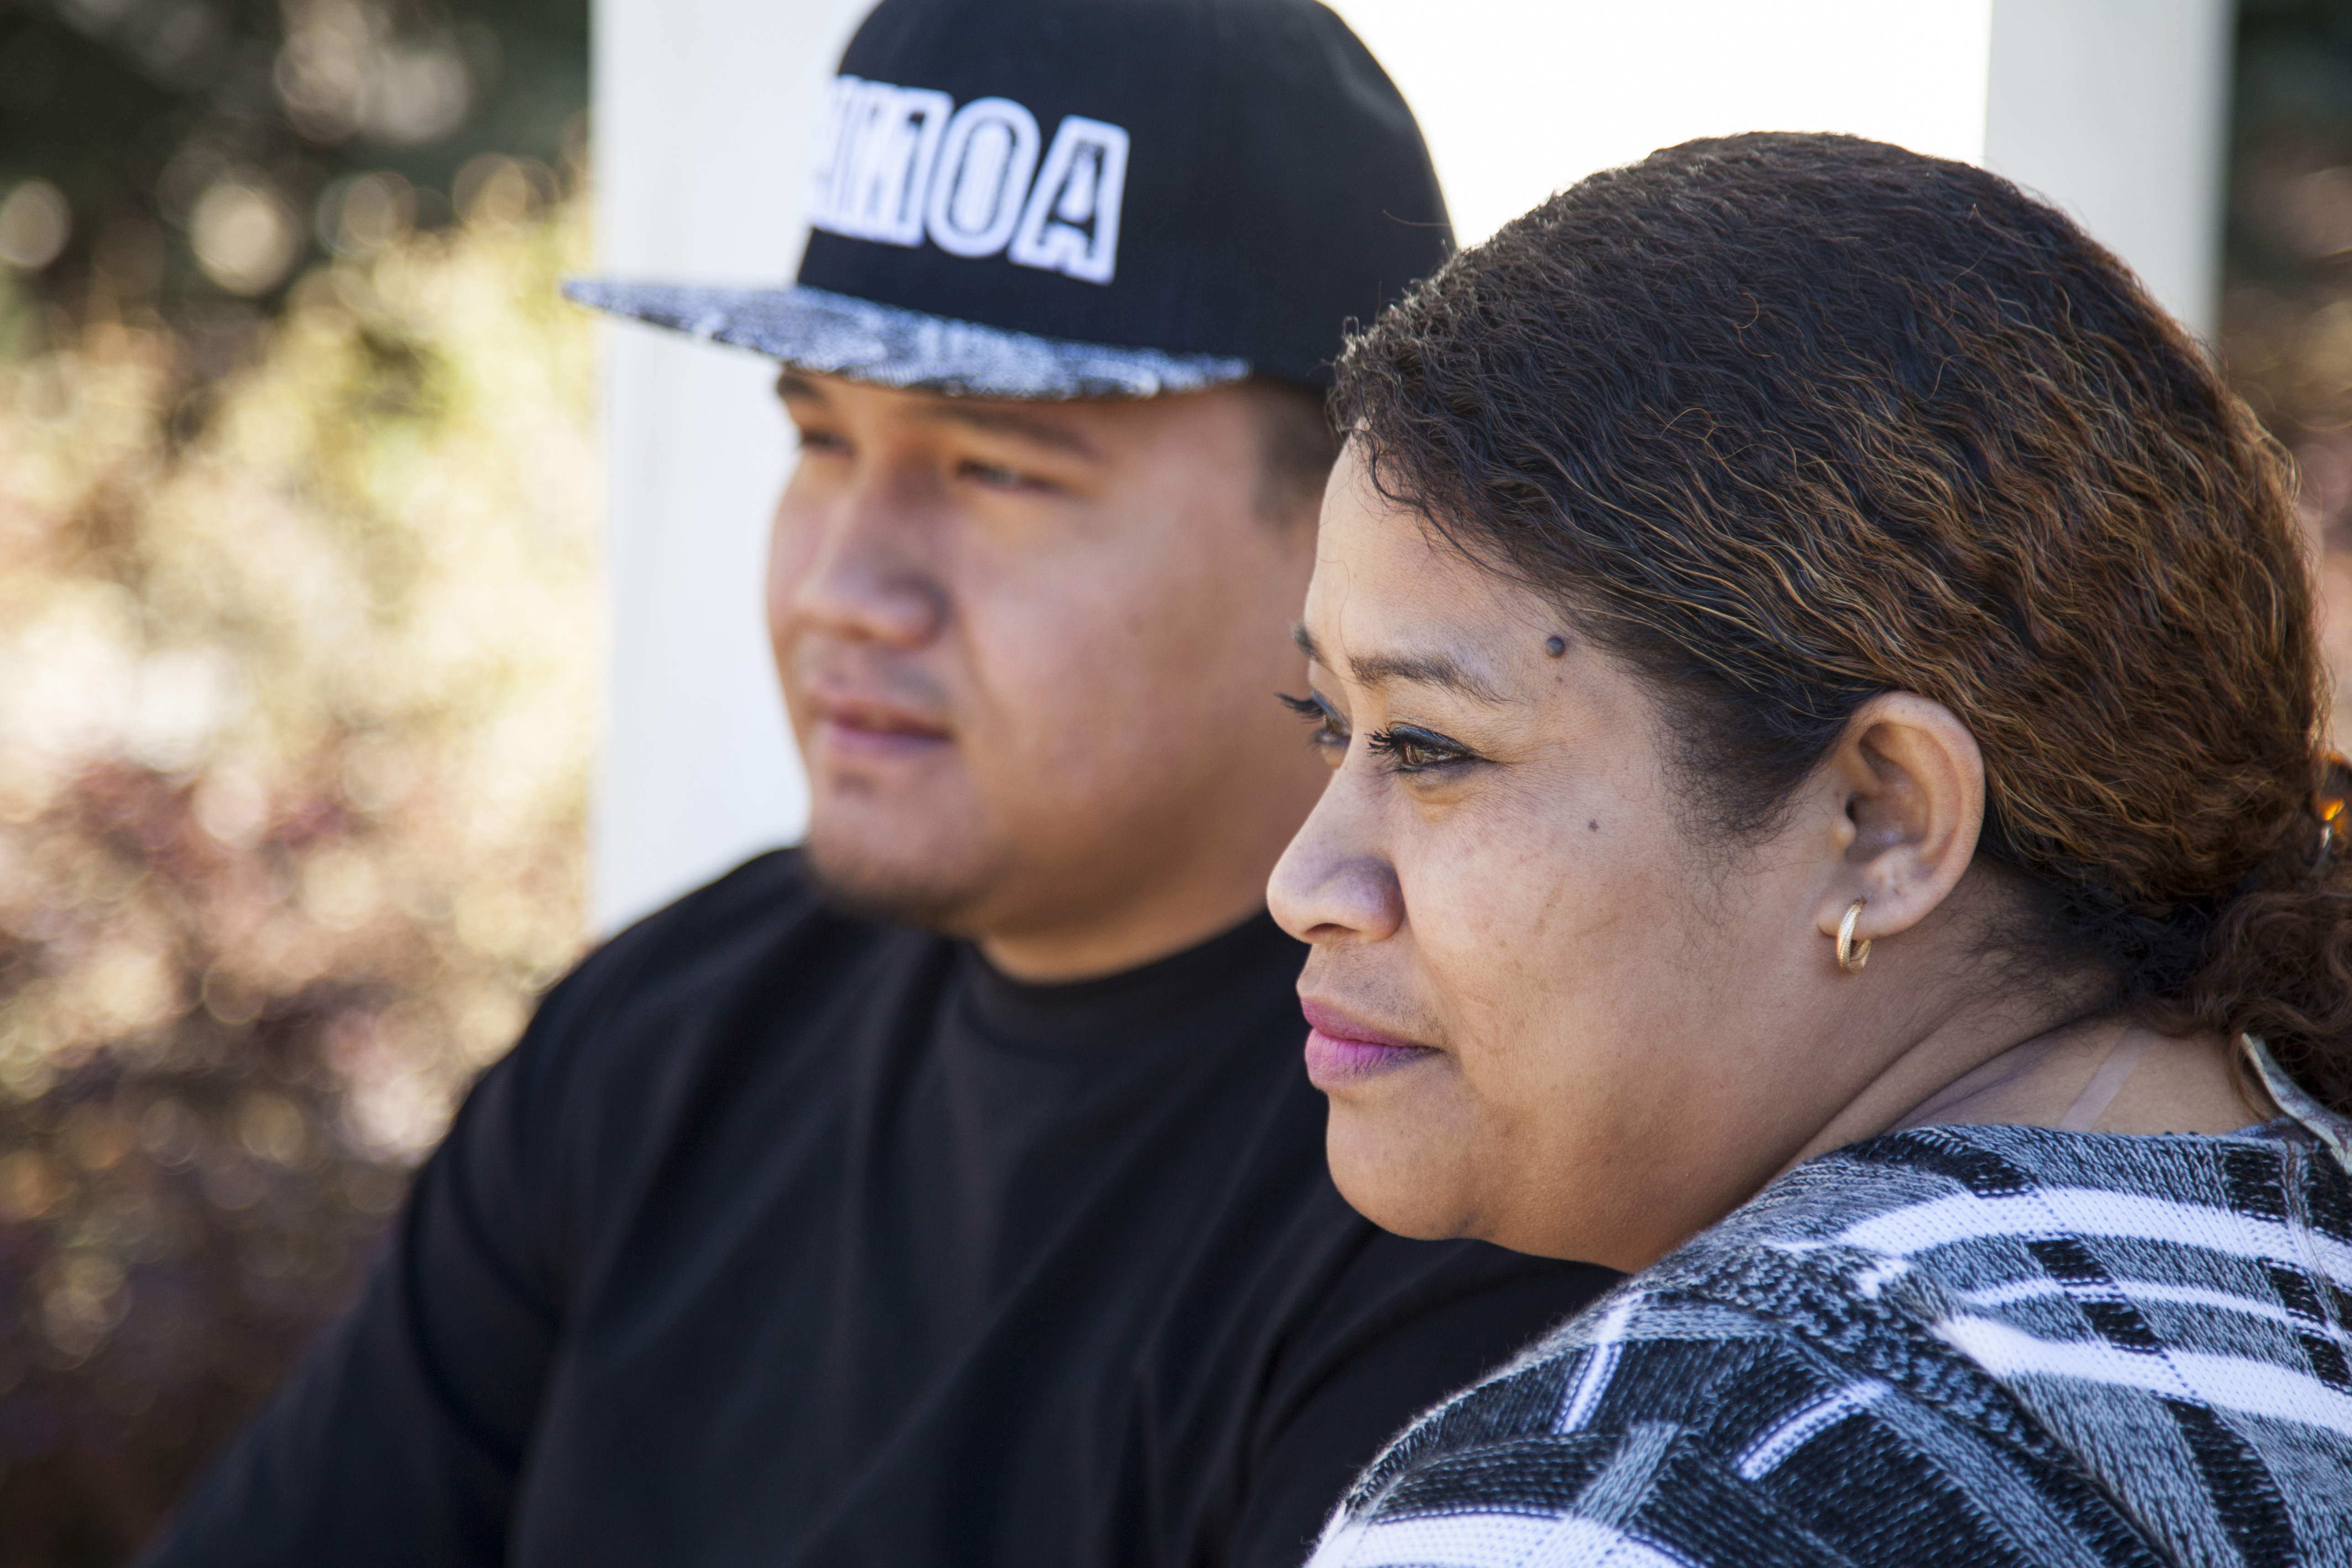 In this undated image provided by nonprofit advocacy and legal group Equally American, Pale Tuli, left, and Rosavita Tuli, both American Samoans and individual plaintiffs in a lawsuit against the United States seeking full U.S. citizenship, pose for a photo in Salt Lake City.